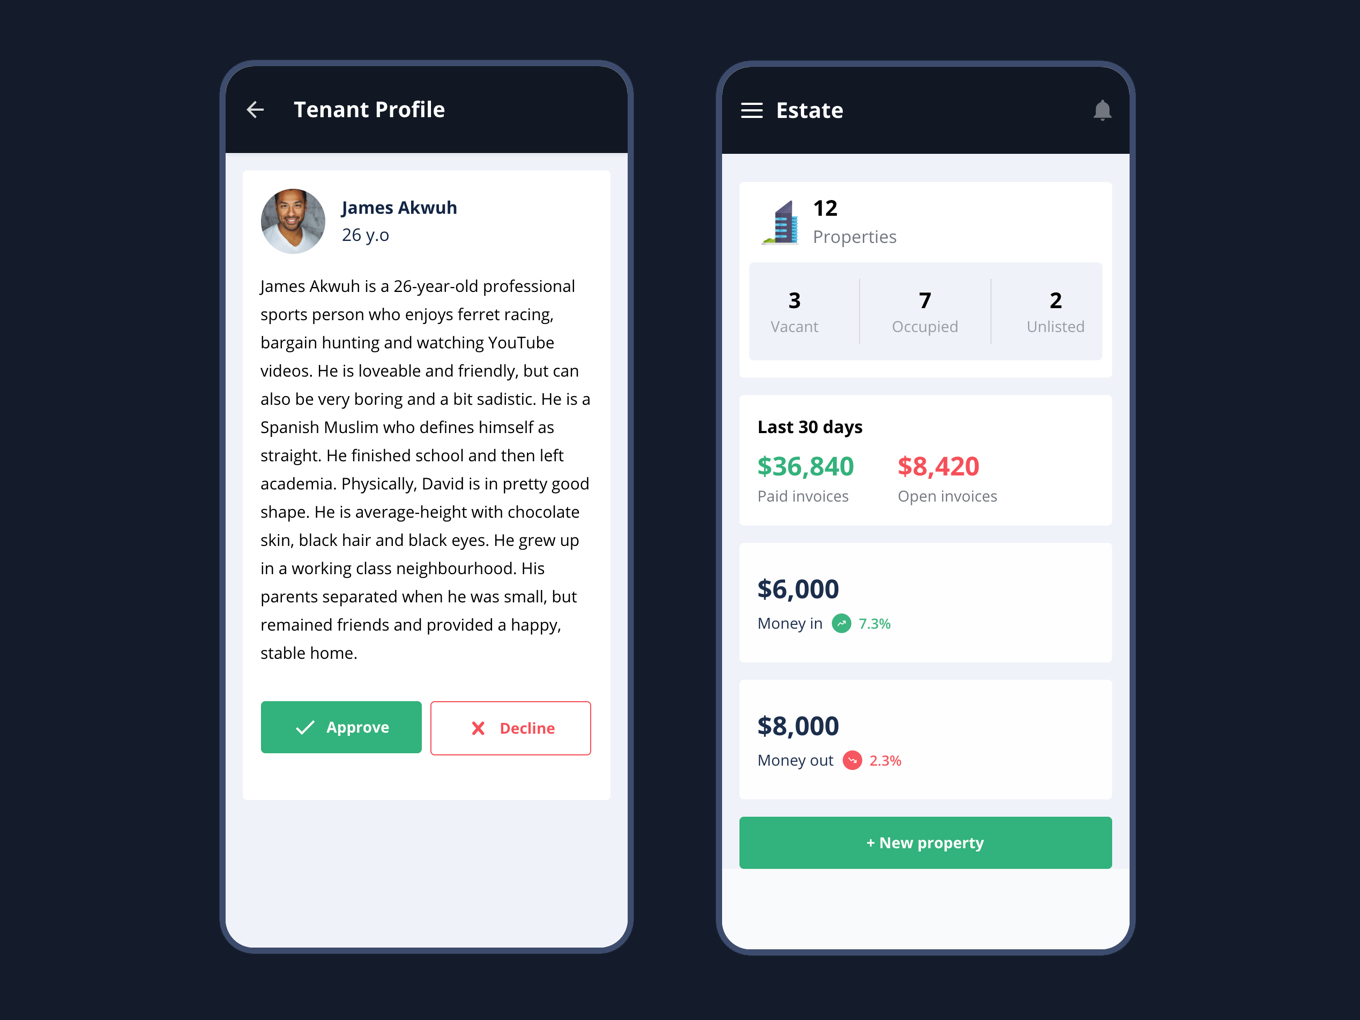 mobile app for Real Estate - Dashboard and Details